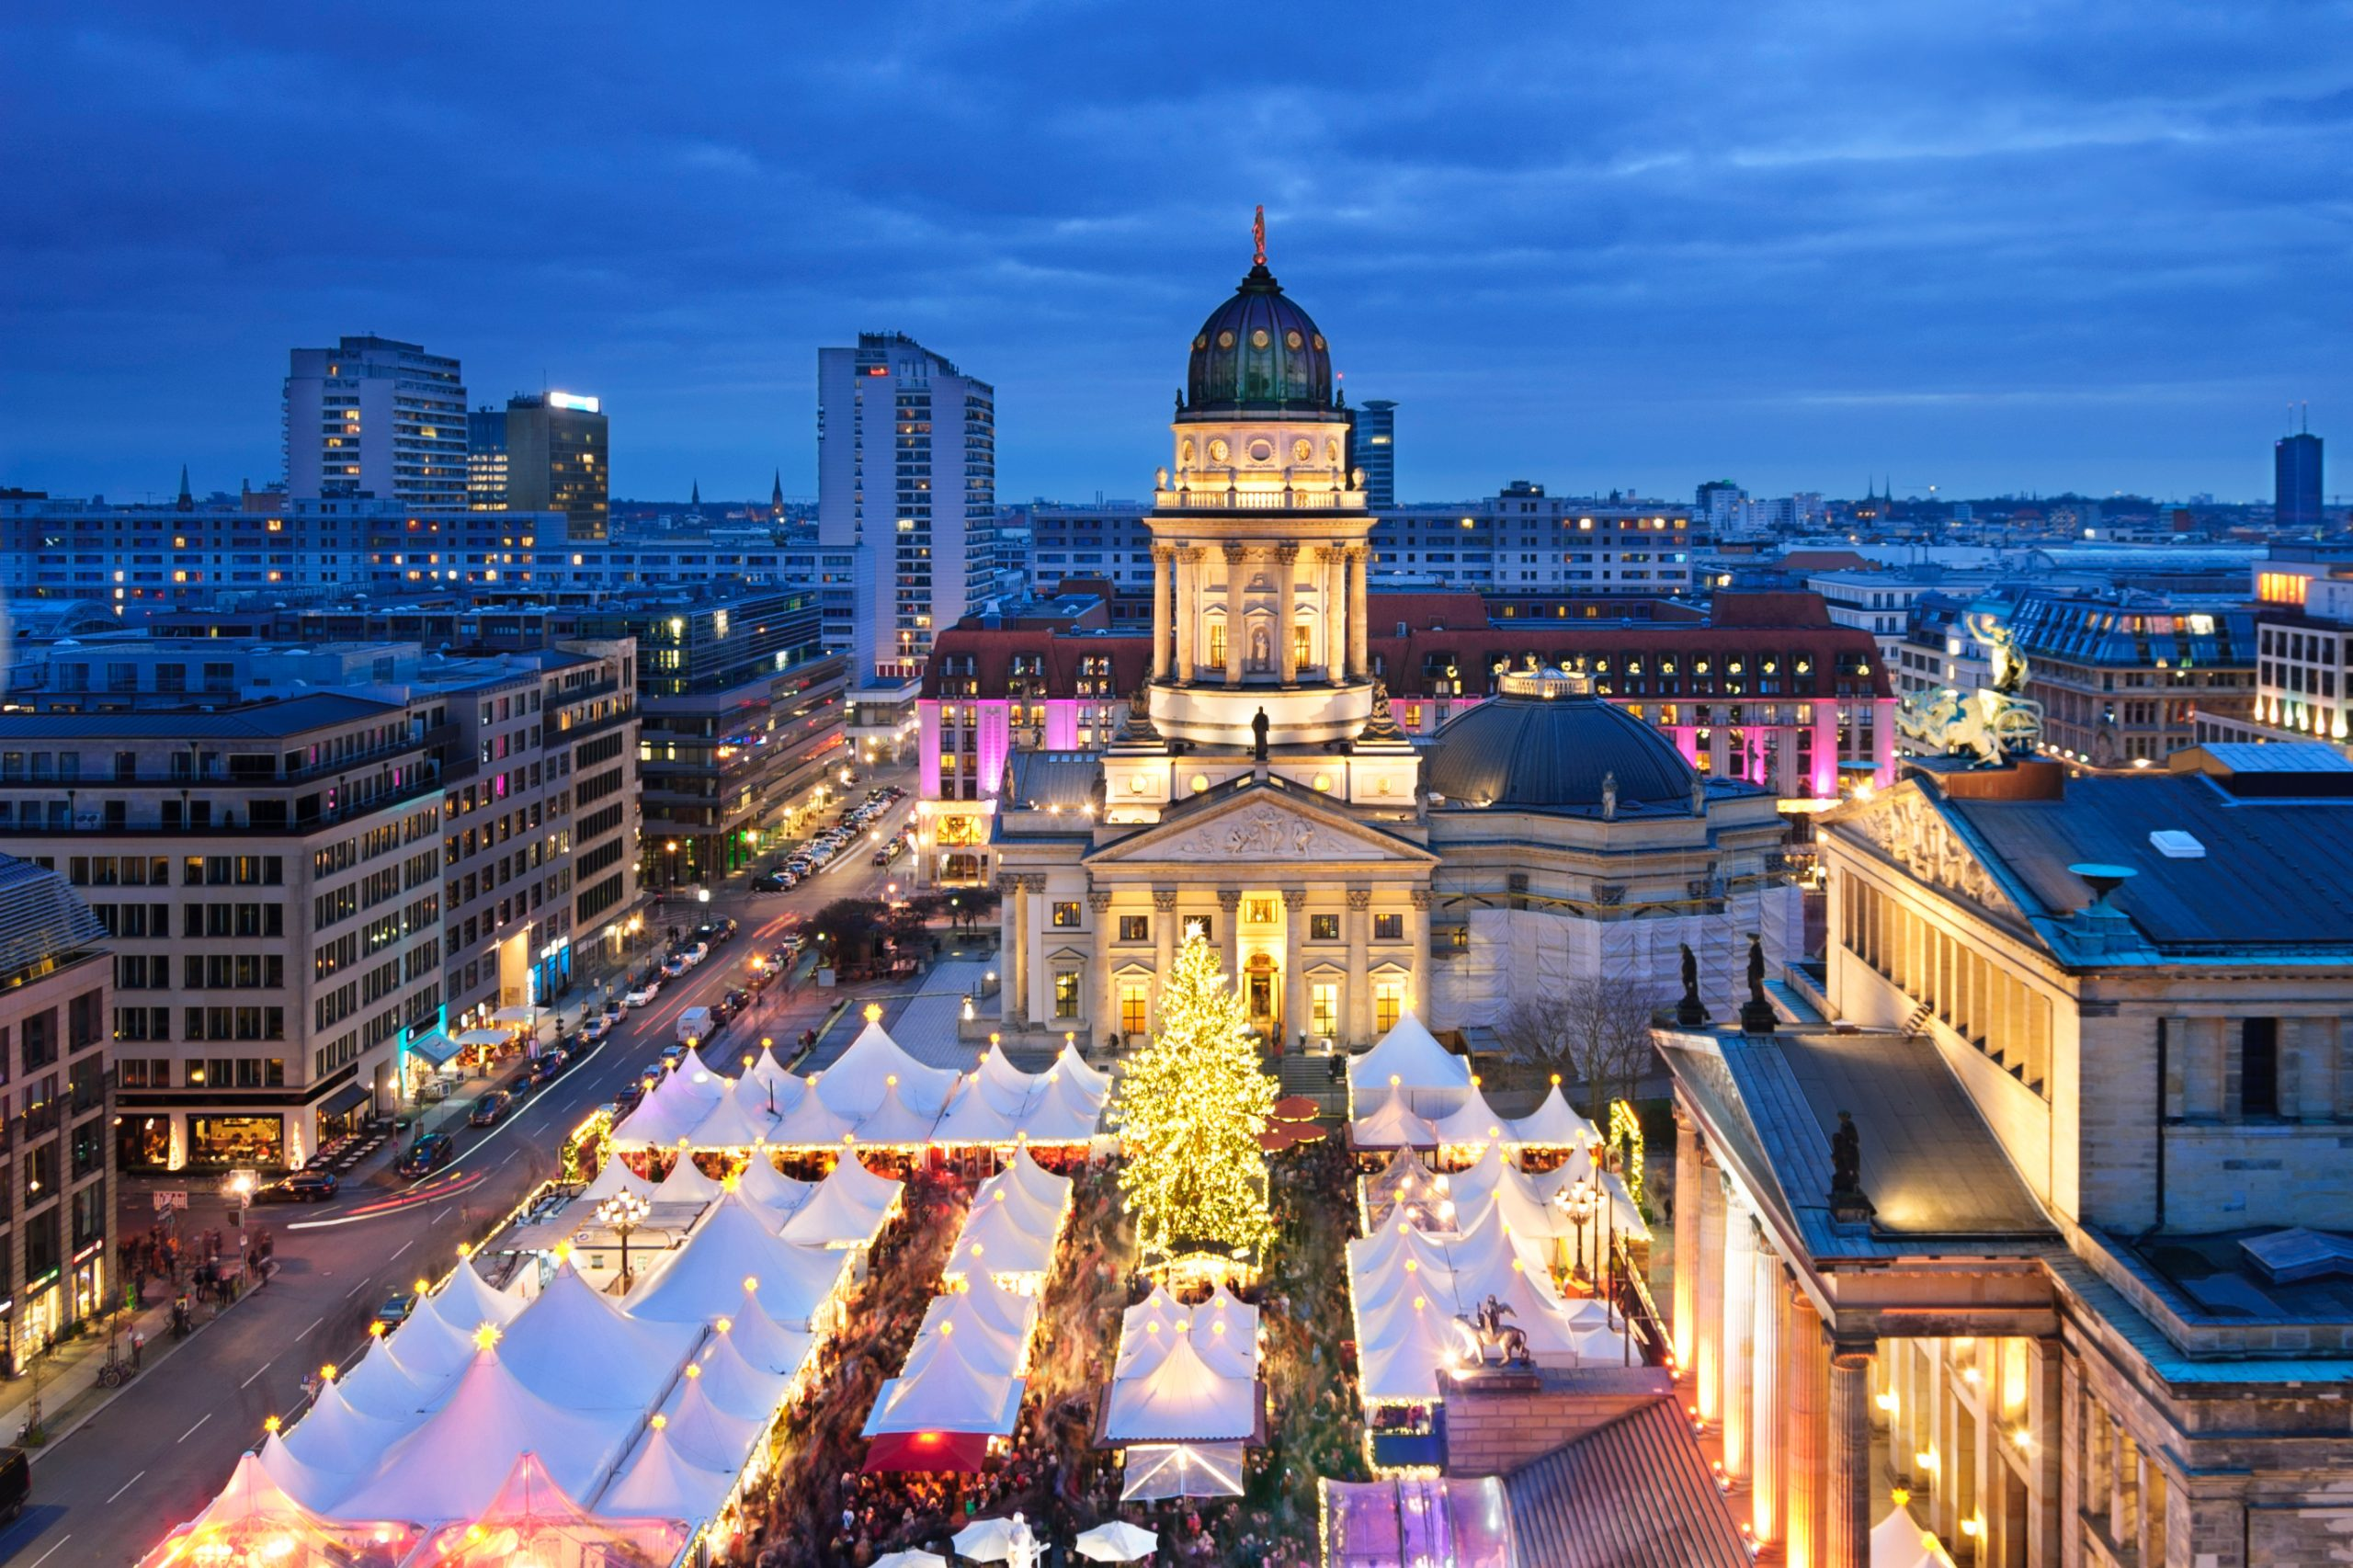 2019 Guide to the Best Berlin Christmas Markets